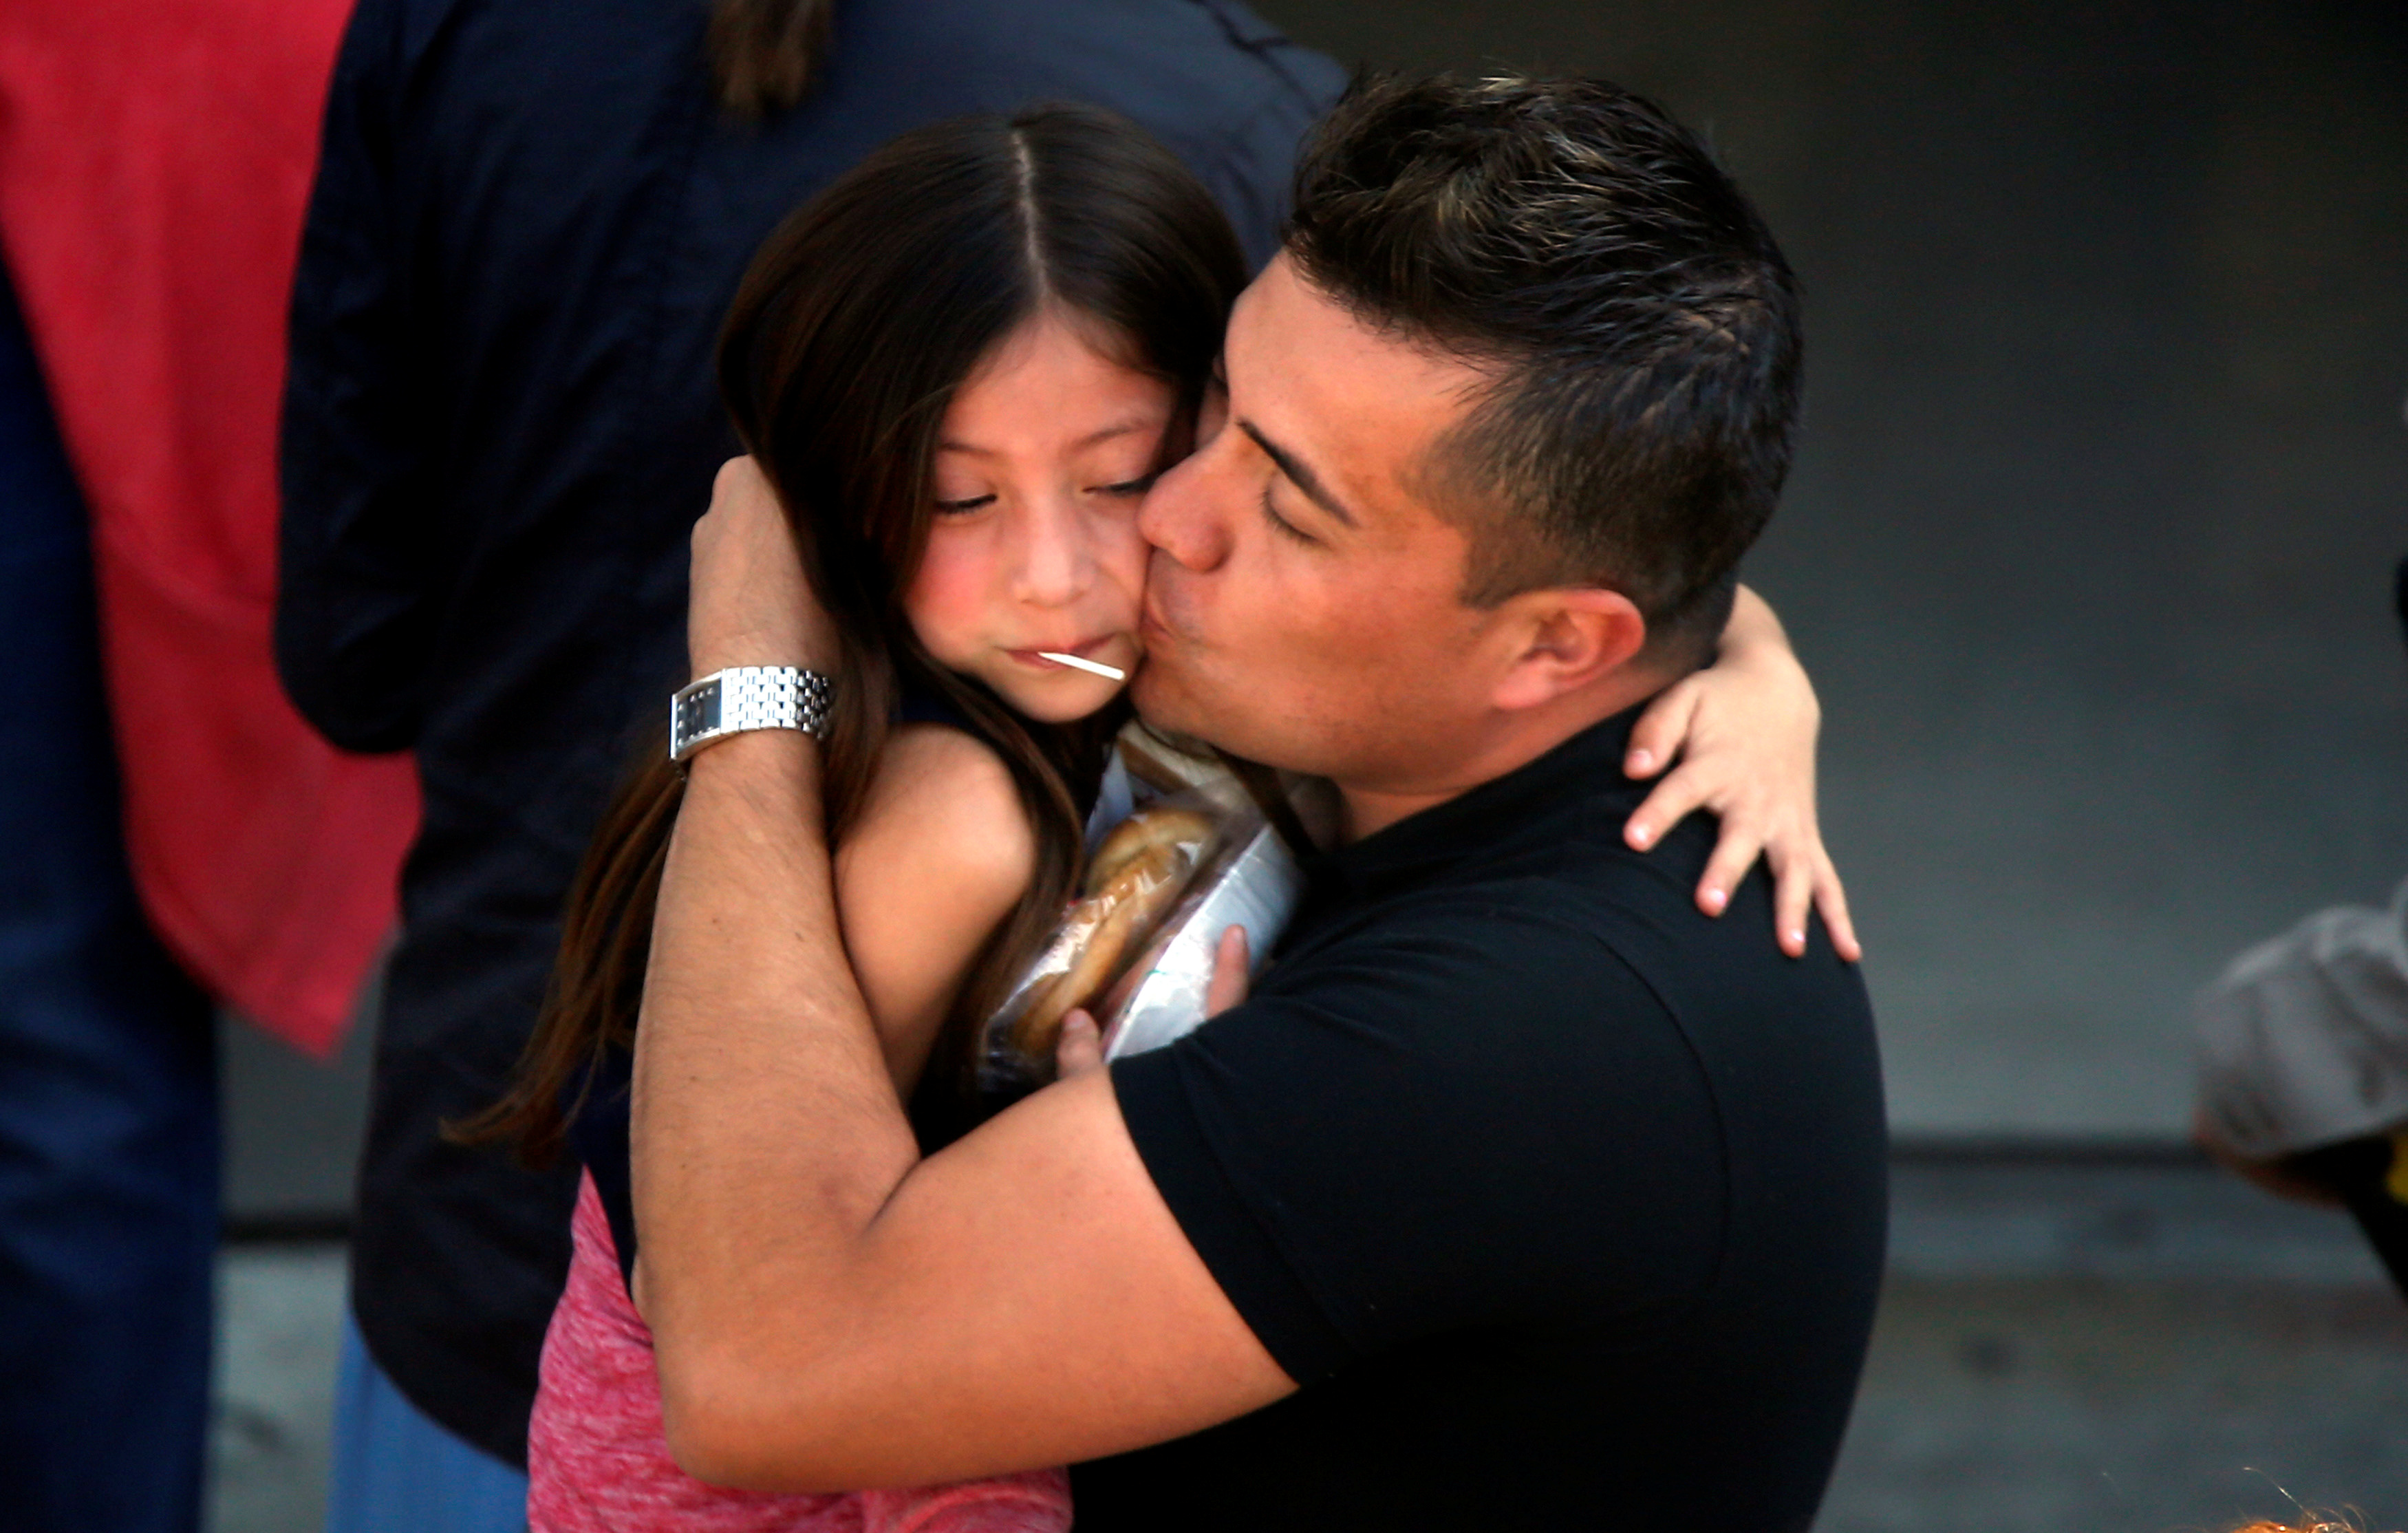 A student who was evacuated after a shooting at North Park Elementary School is embraced after groups of them were reunited with parents waiting at a high school in San Bernardino, Calif. (REUTERS/Mario Anzuoni)